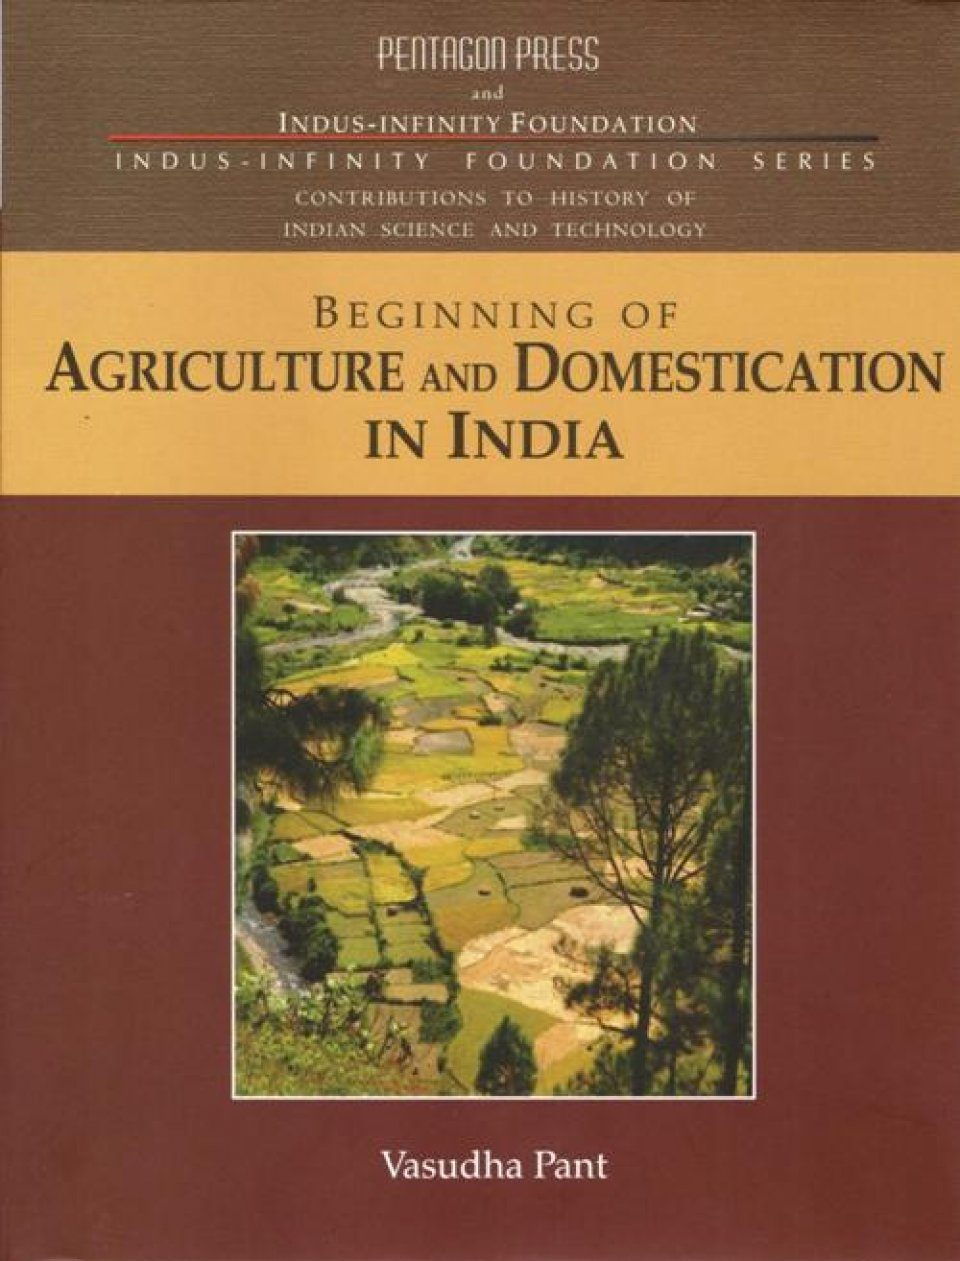 Beginning of Agriculture and Domestication in India